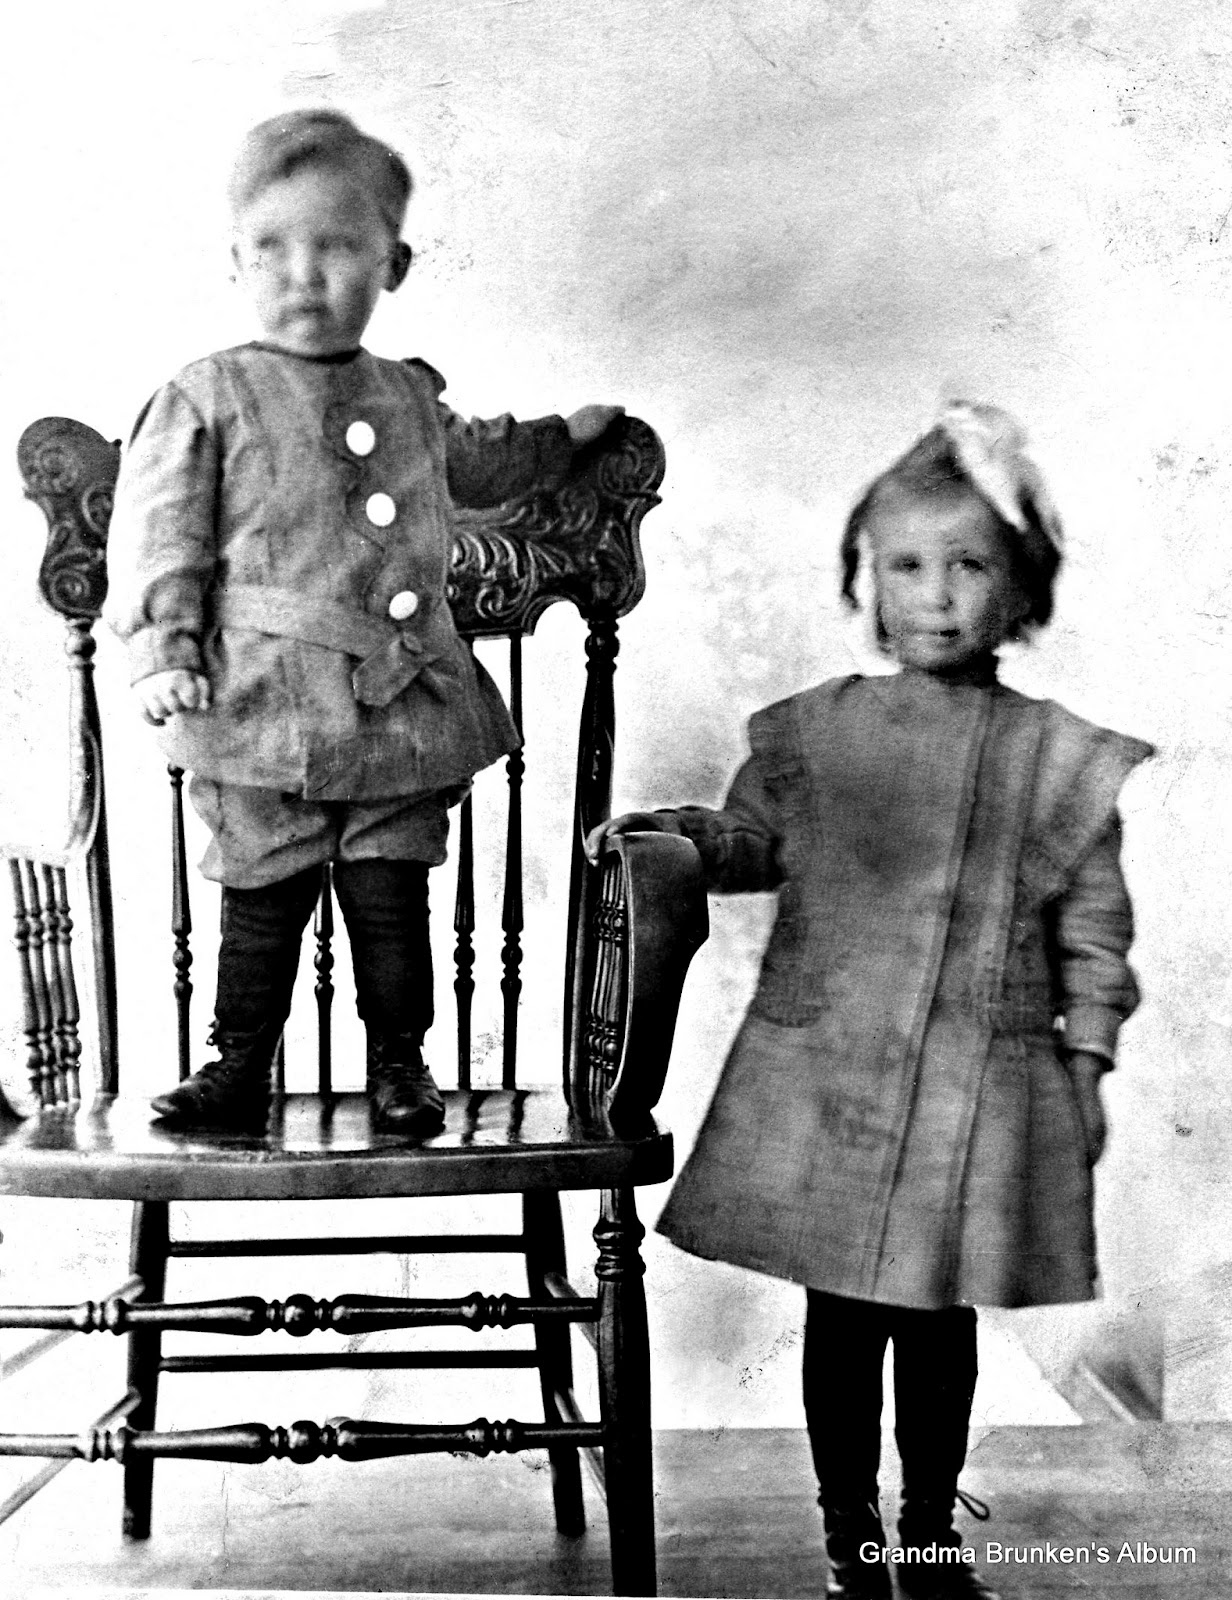 William and Mary Brunken Children - 1910